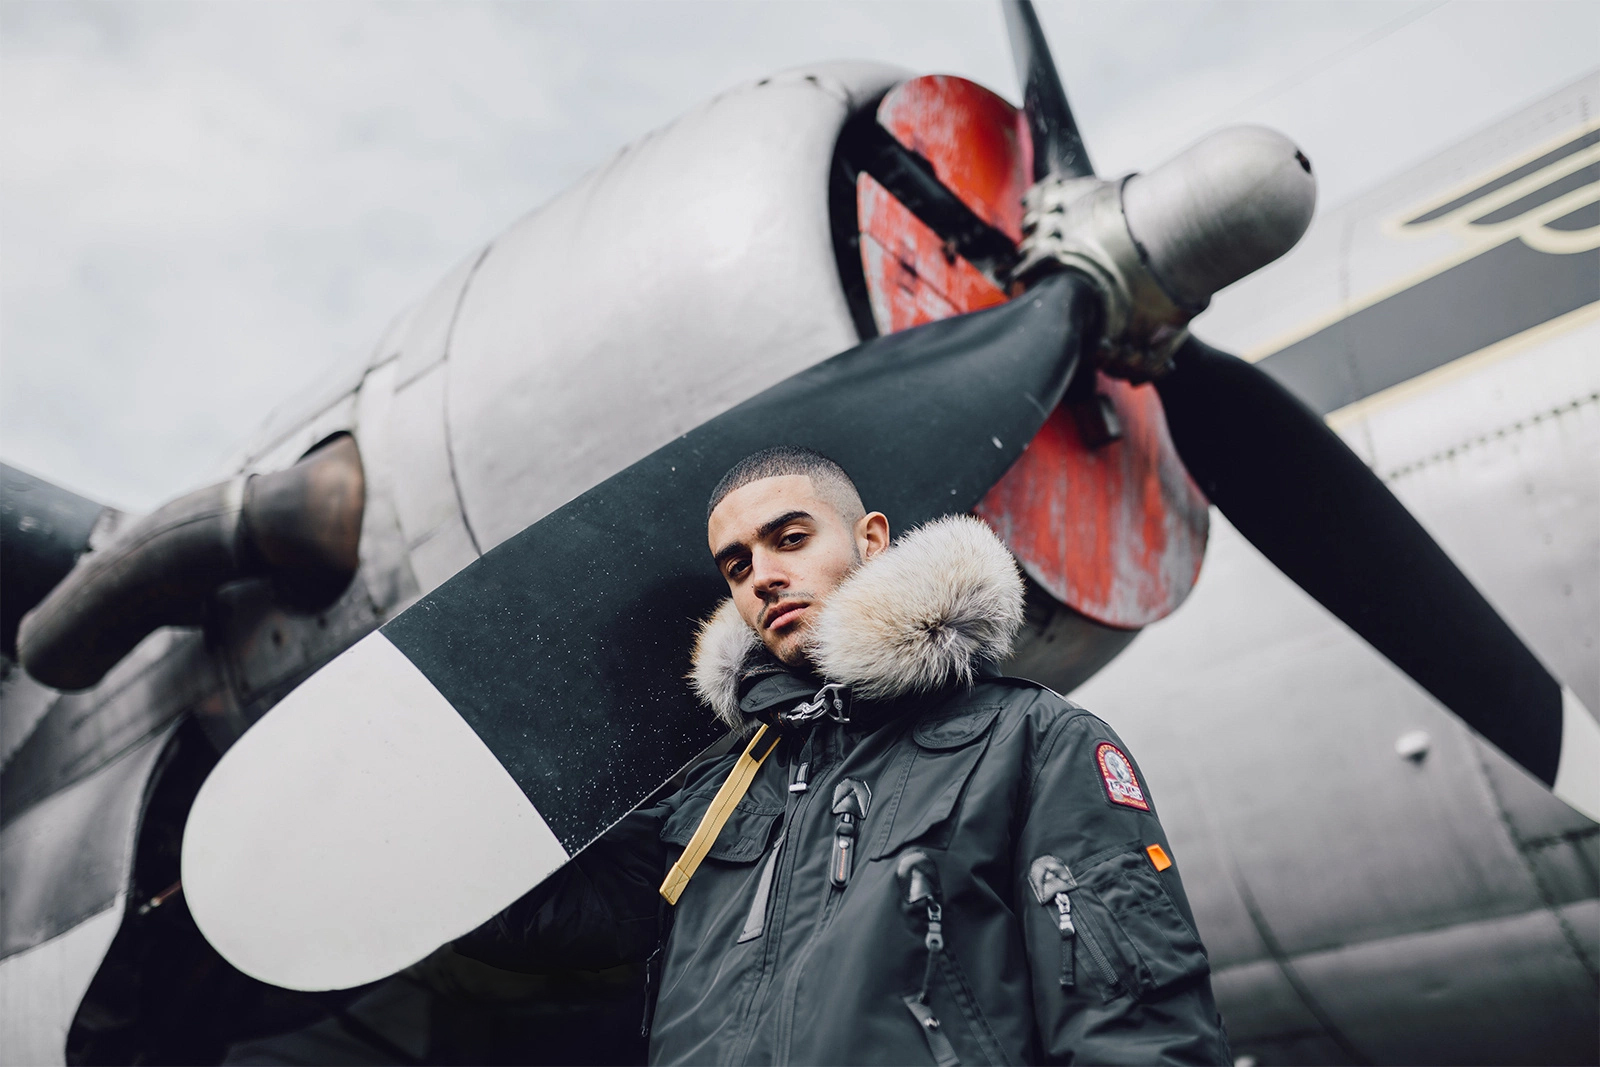 Parajumpers Heads to an Airfield to Showcase Military-Inspired Looks for 2016 Fall/Winter